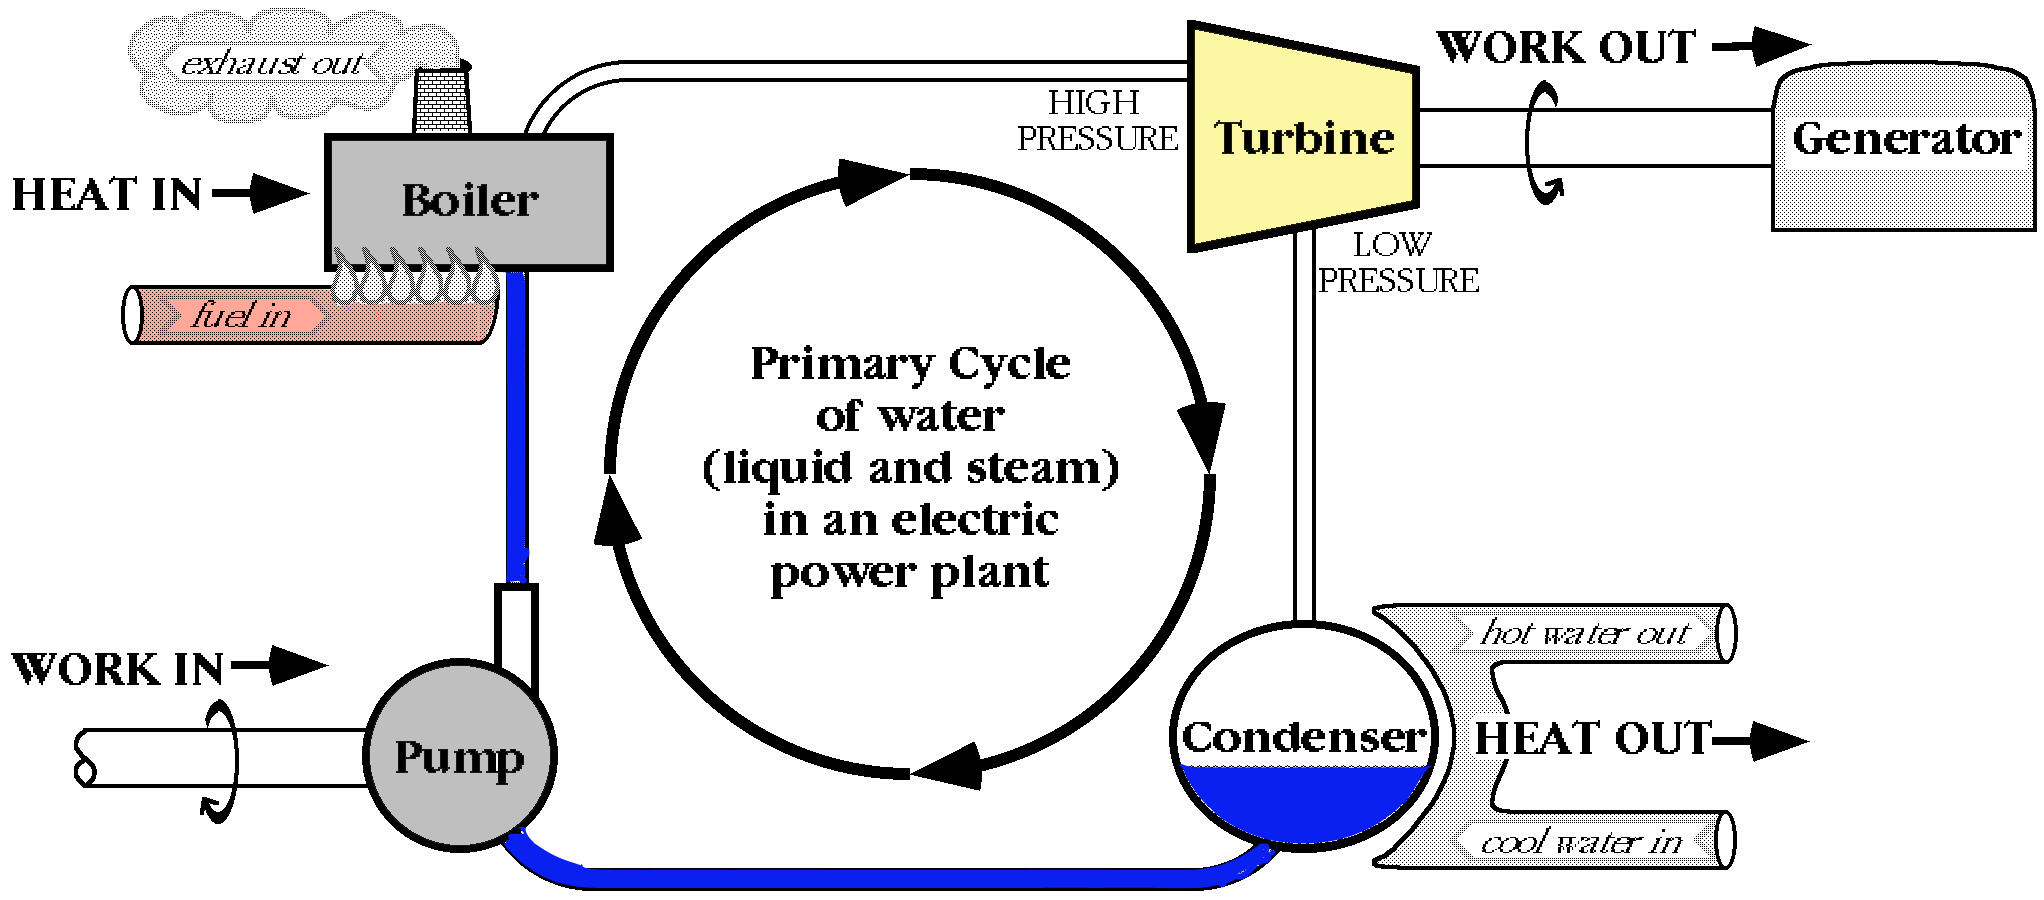 Steam cycle at the plant